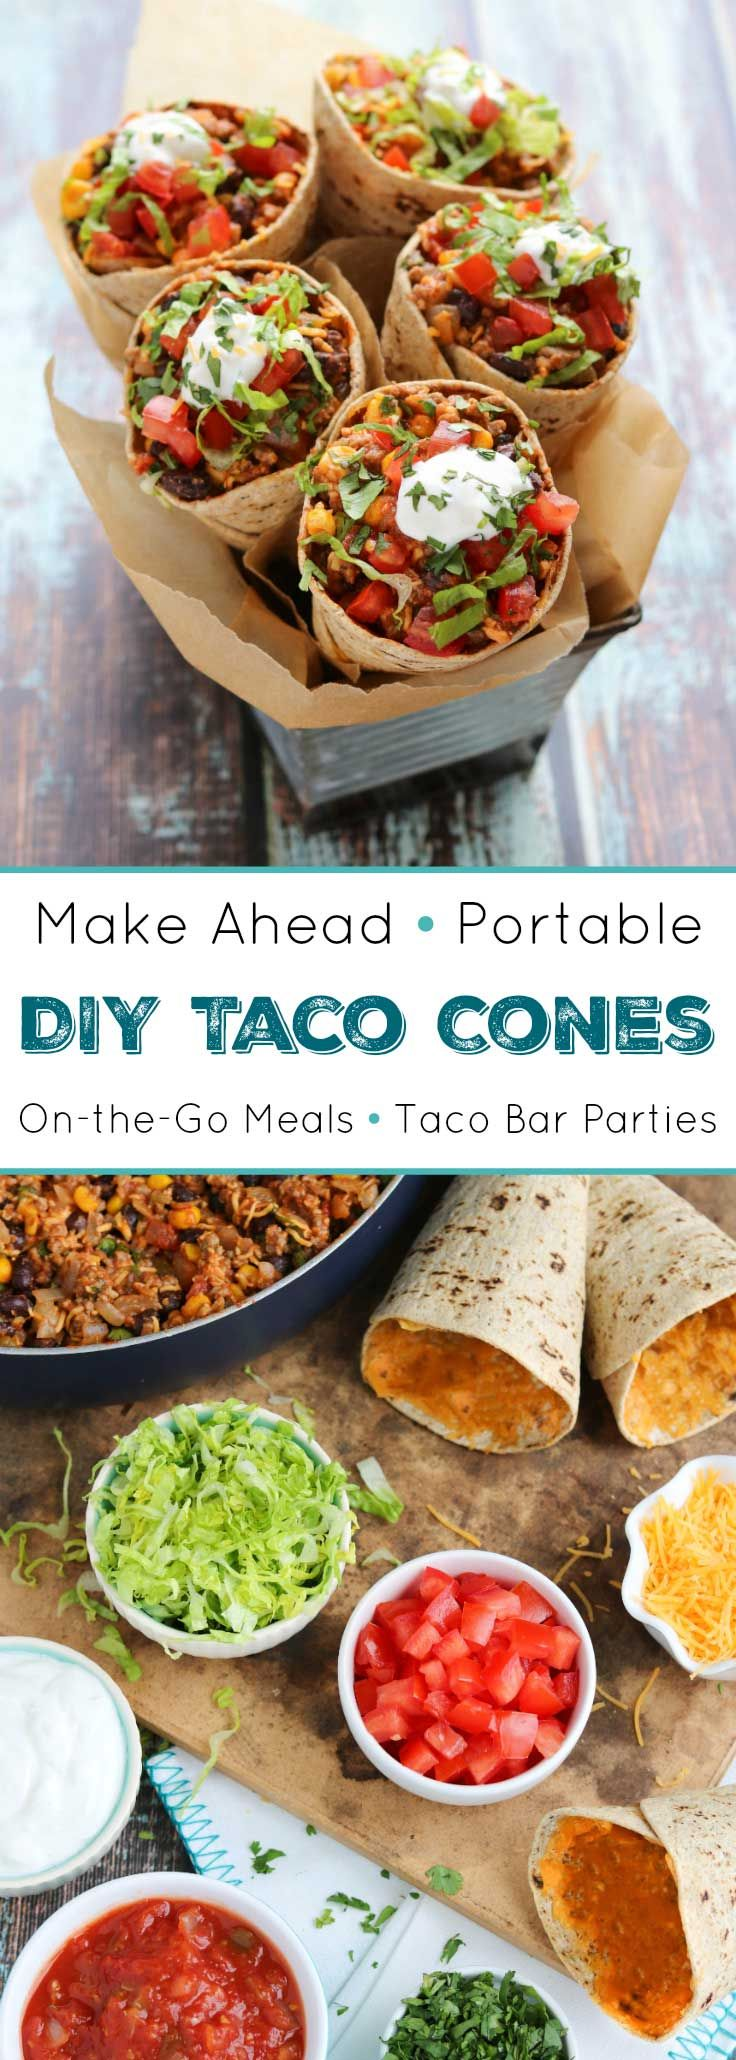 Great for taco bars or on-the-go, busy weeknights! Fun, make-ahead, portable tacos! These Taco Cones are healthier than traditional Walking Tacos recipes and even more fun! Our DIY Ta-Cones are full of great taco flavor, but they're totally portable! Plus, these healthy beef Taco Cones can be prepped ahead for a yummy, make-ahead taco recipe you can rewarm all week, whenever your family is ready to eat! Perfect for Taco Tuesday or taco bar parties & tailgates! {ad}…